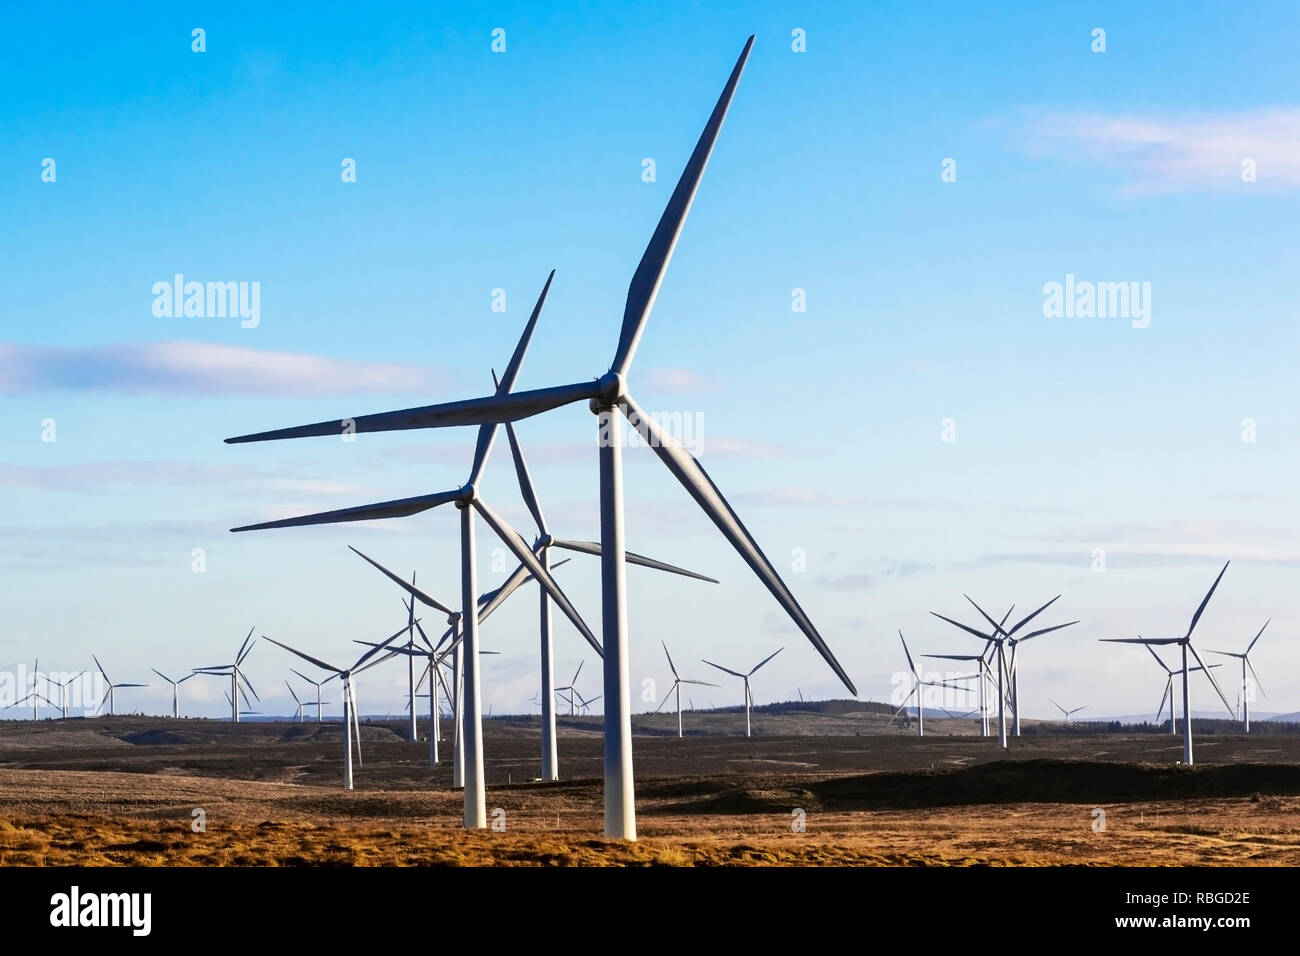 Scottish Power Stock Photos & Scottish Power Stock Images - Alamy